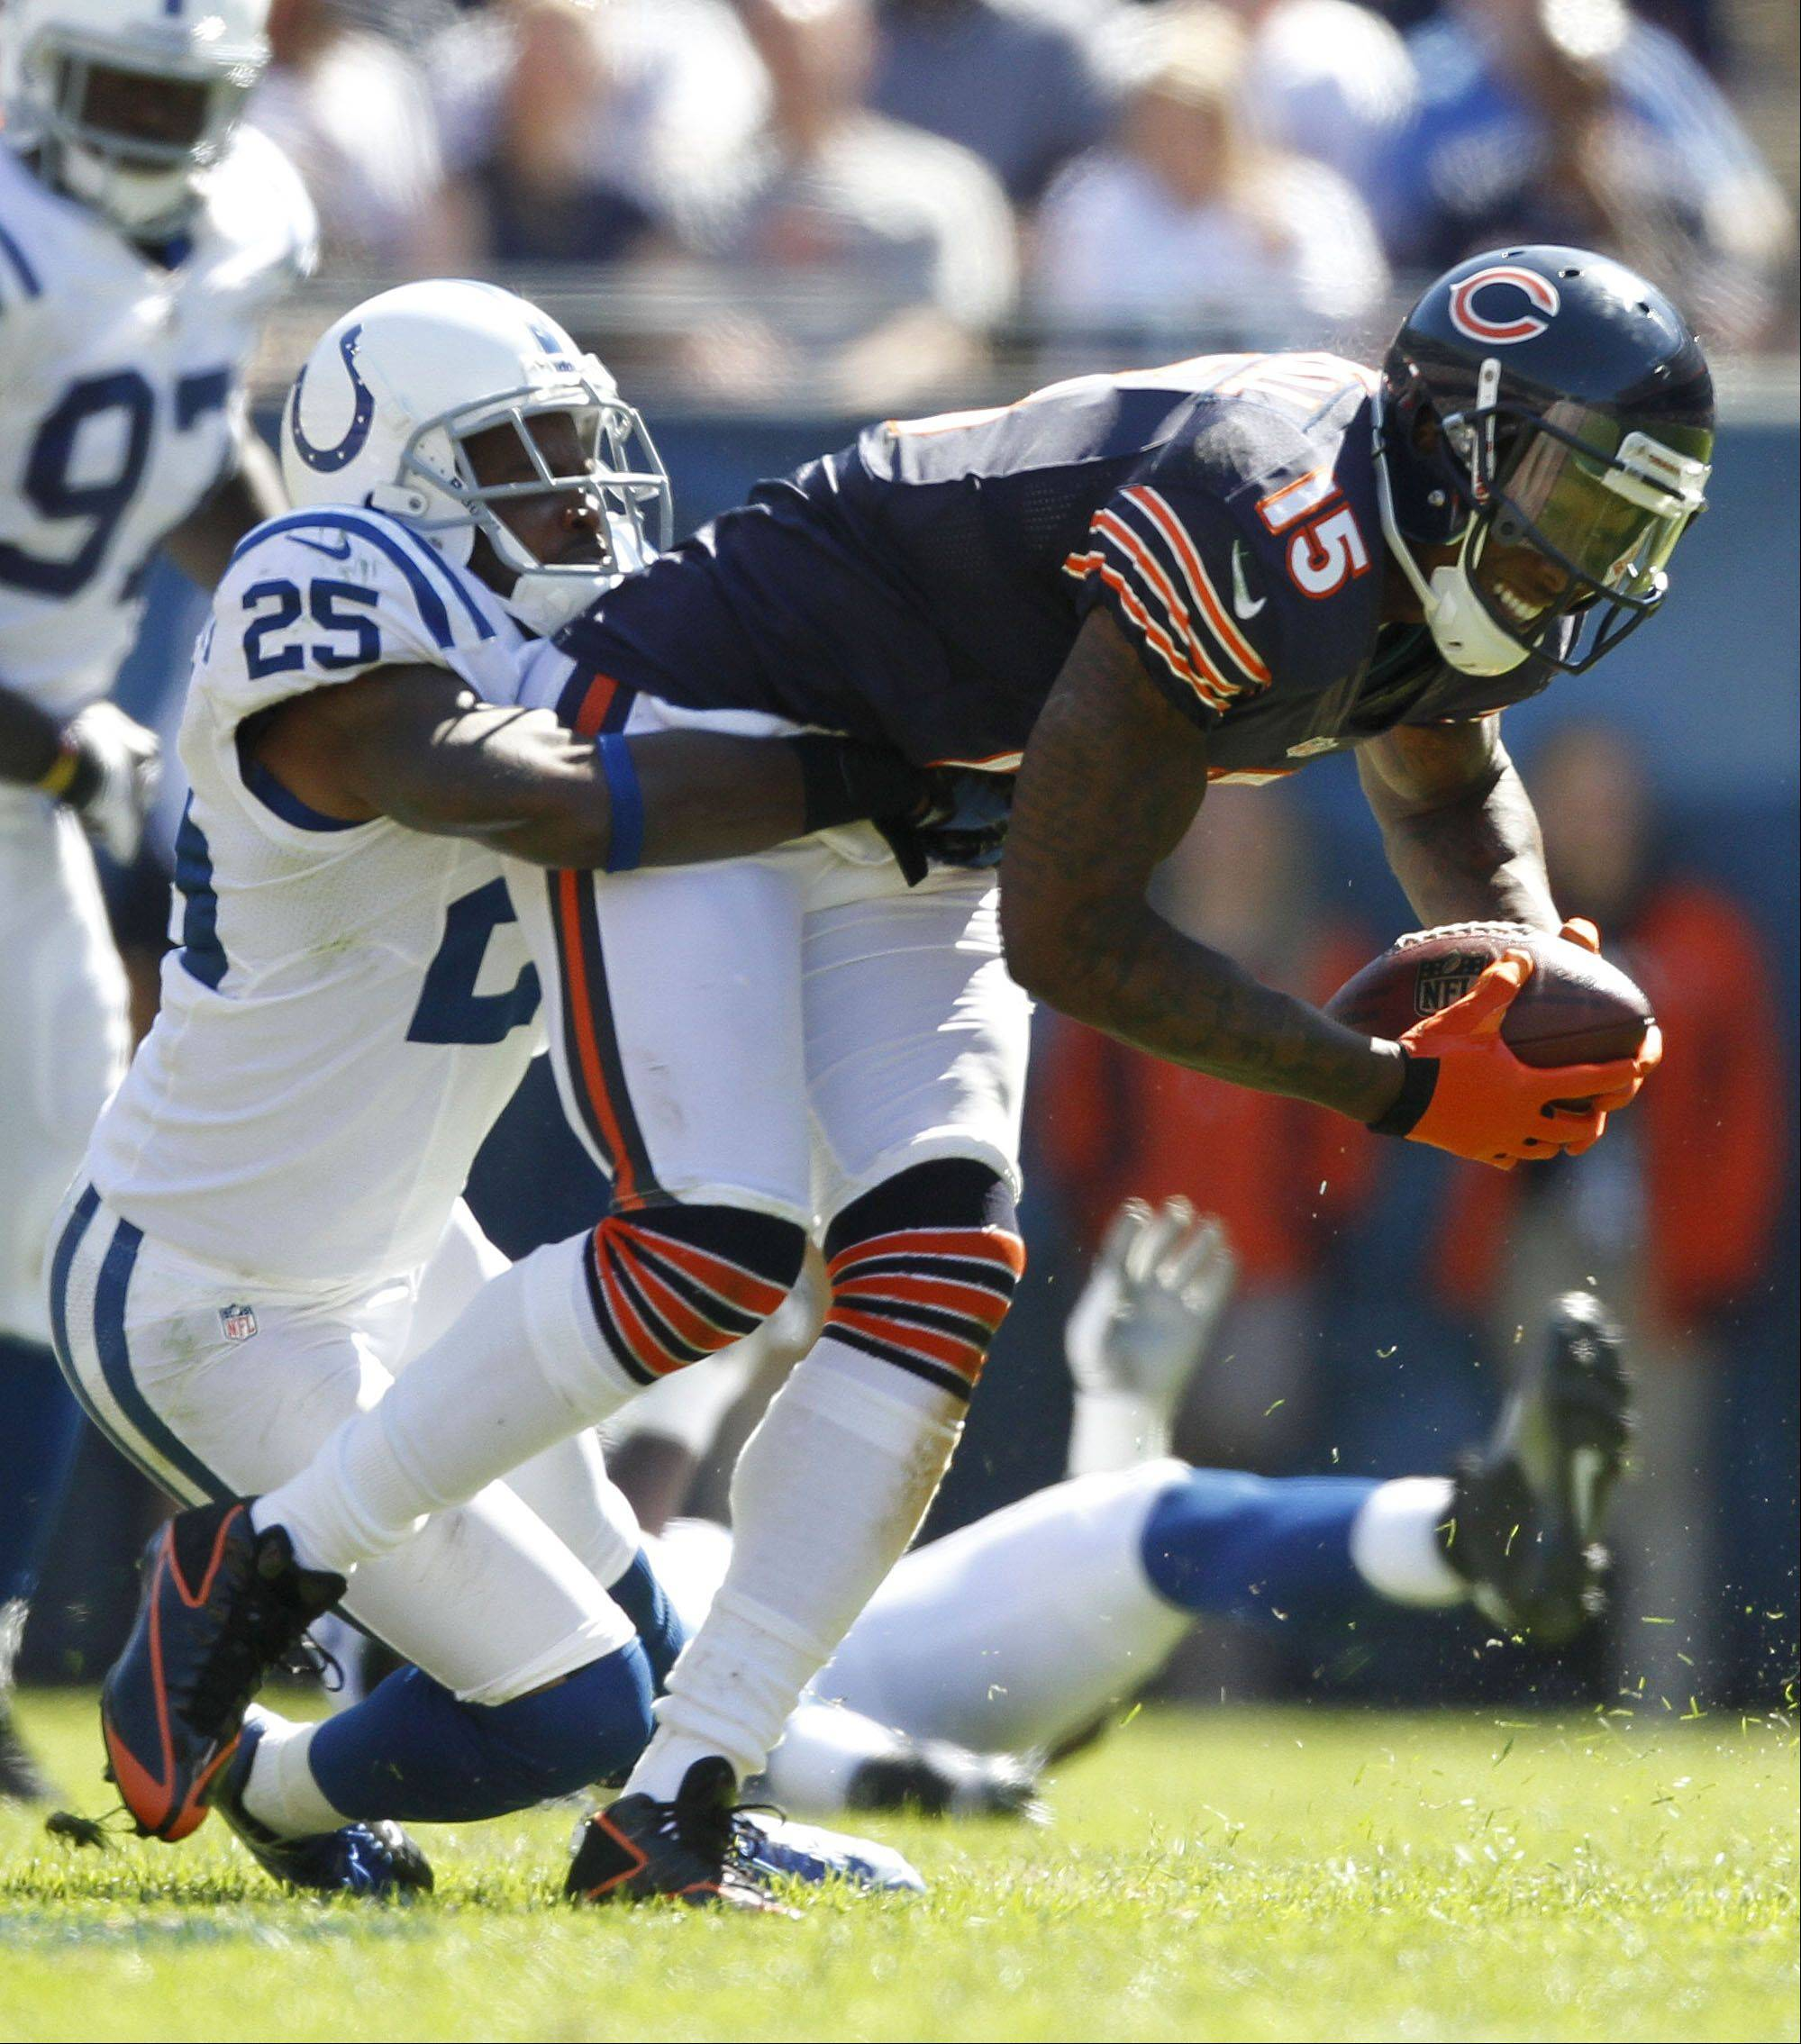 Chicago Bears wide receiver Brandon Marshall tries to escape the grasp of Indianapolis Colts cornerback Jerraud Powers during the Bears season opener.